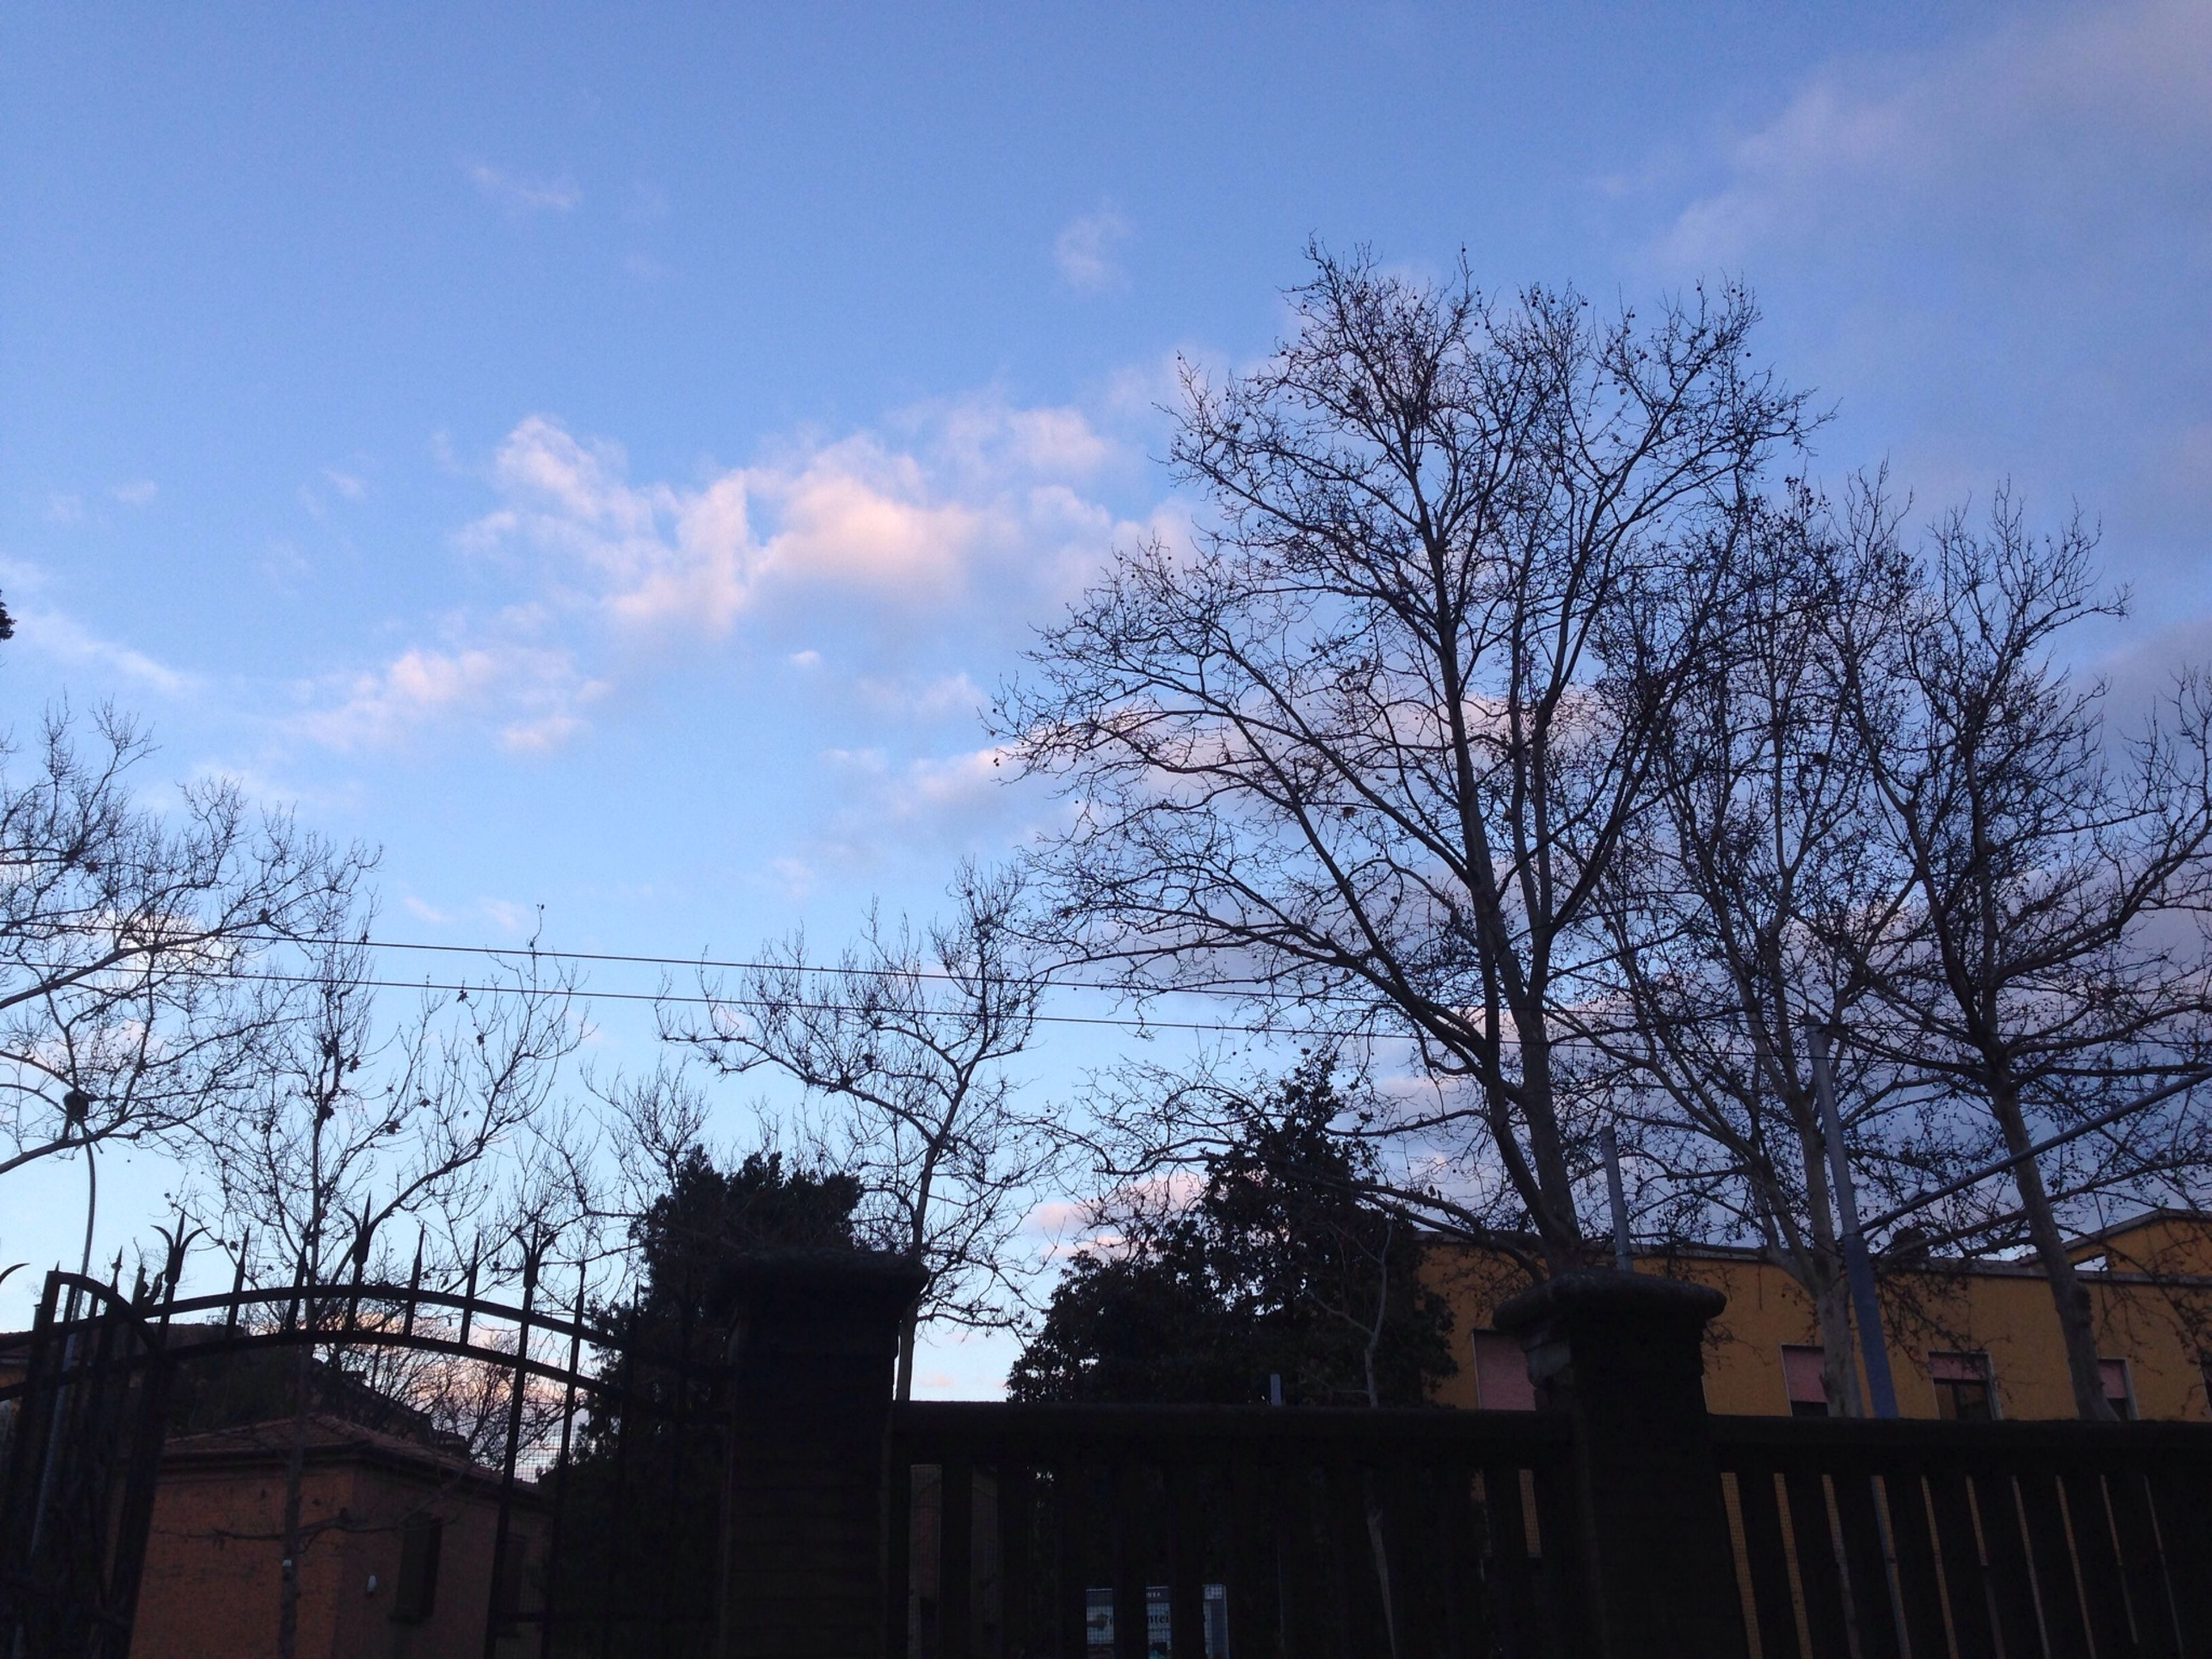 building exterior, low angle view, built structure, architecture, bare tree, tree, sky, branch, silhouette, house, blue, cloud - sky, residential structure, cloud, residential building, outdoors, nature, no people, building, high section